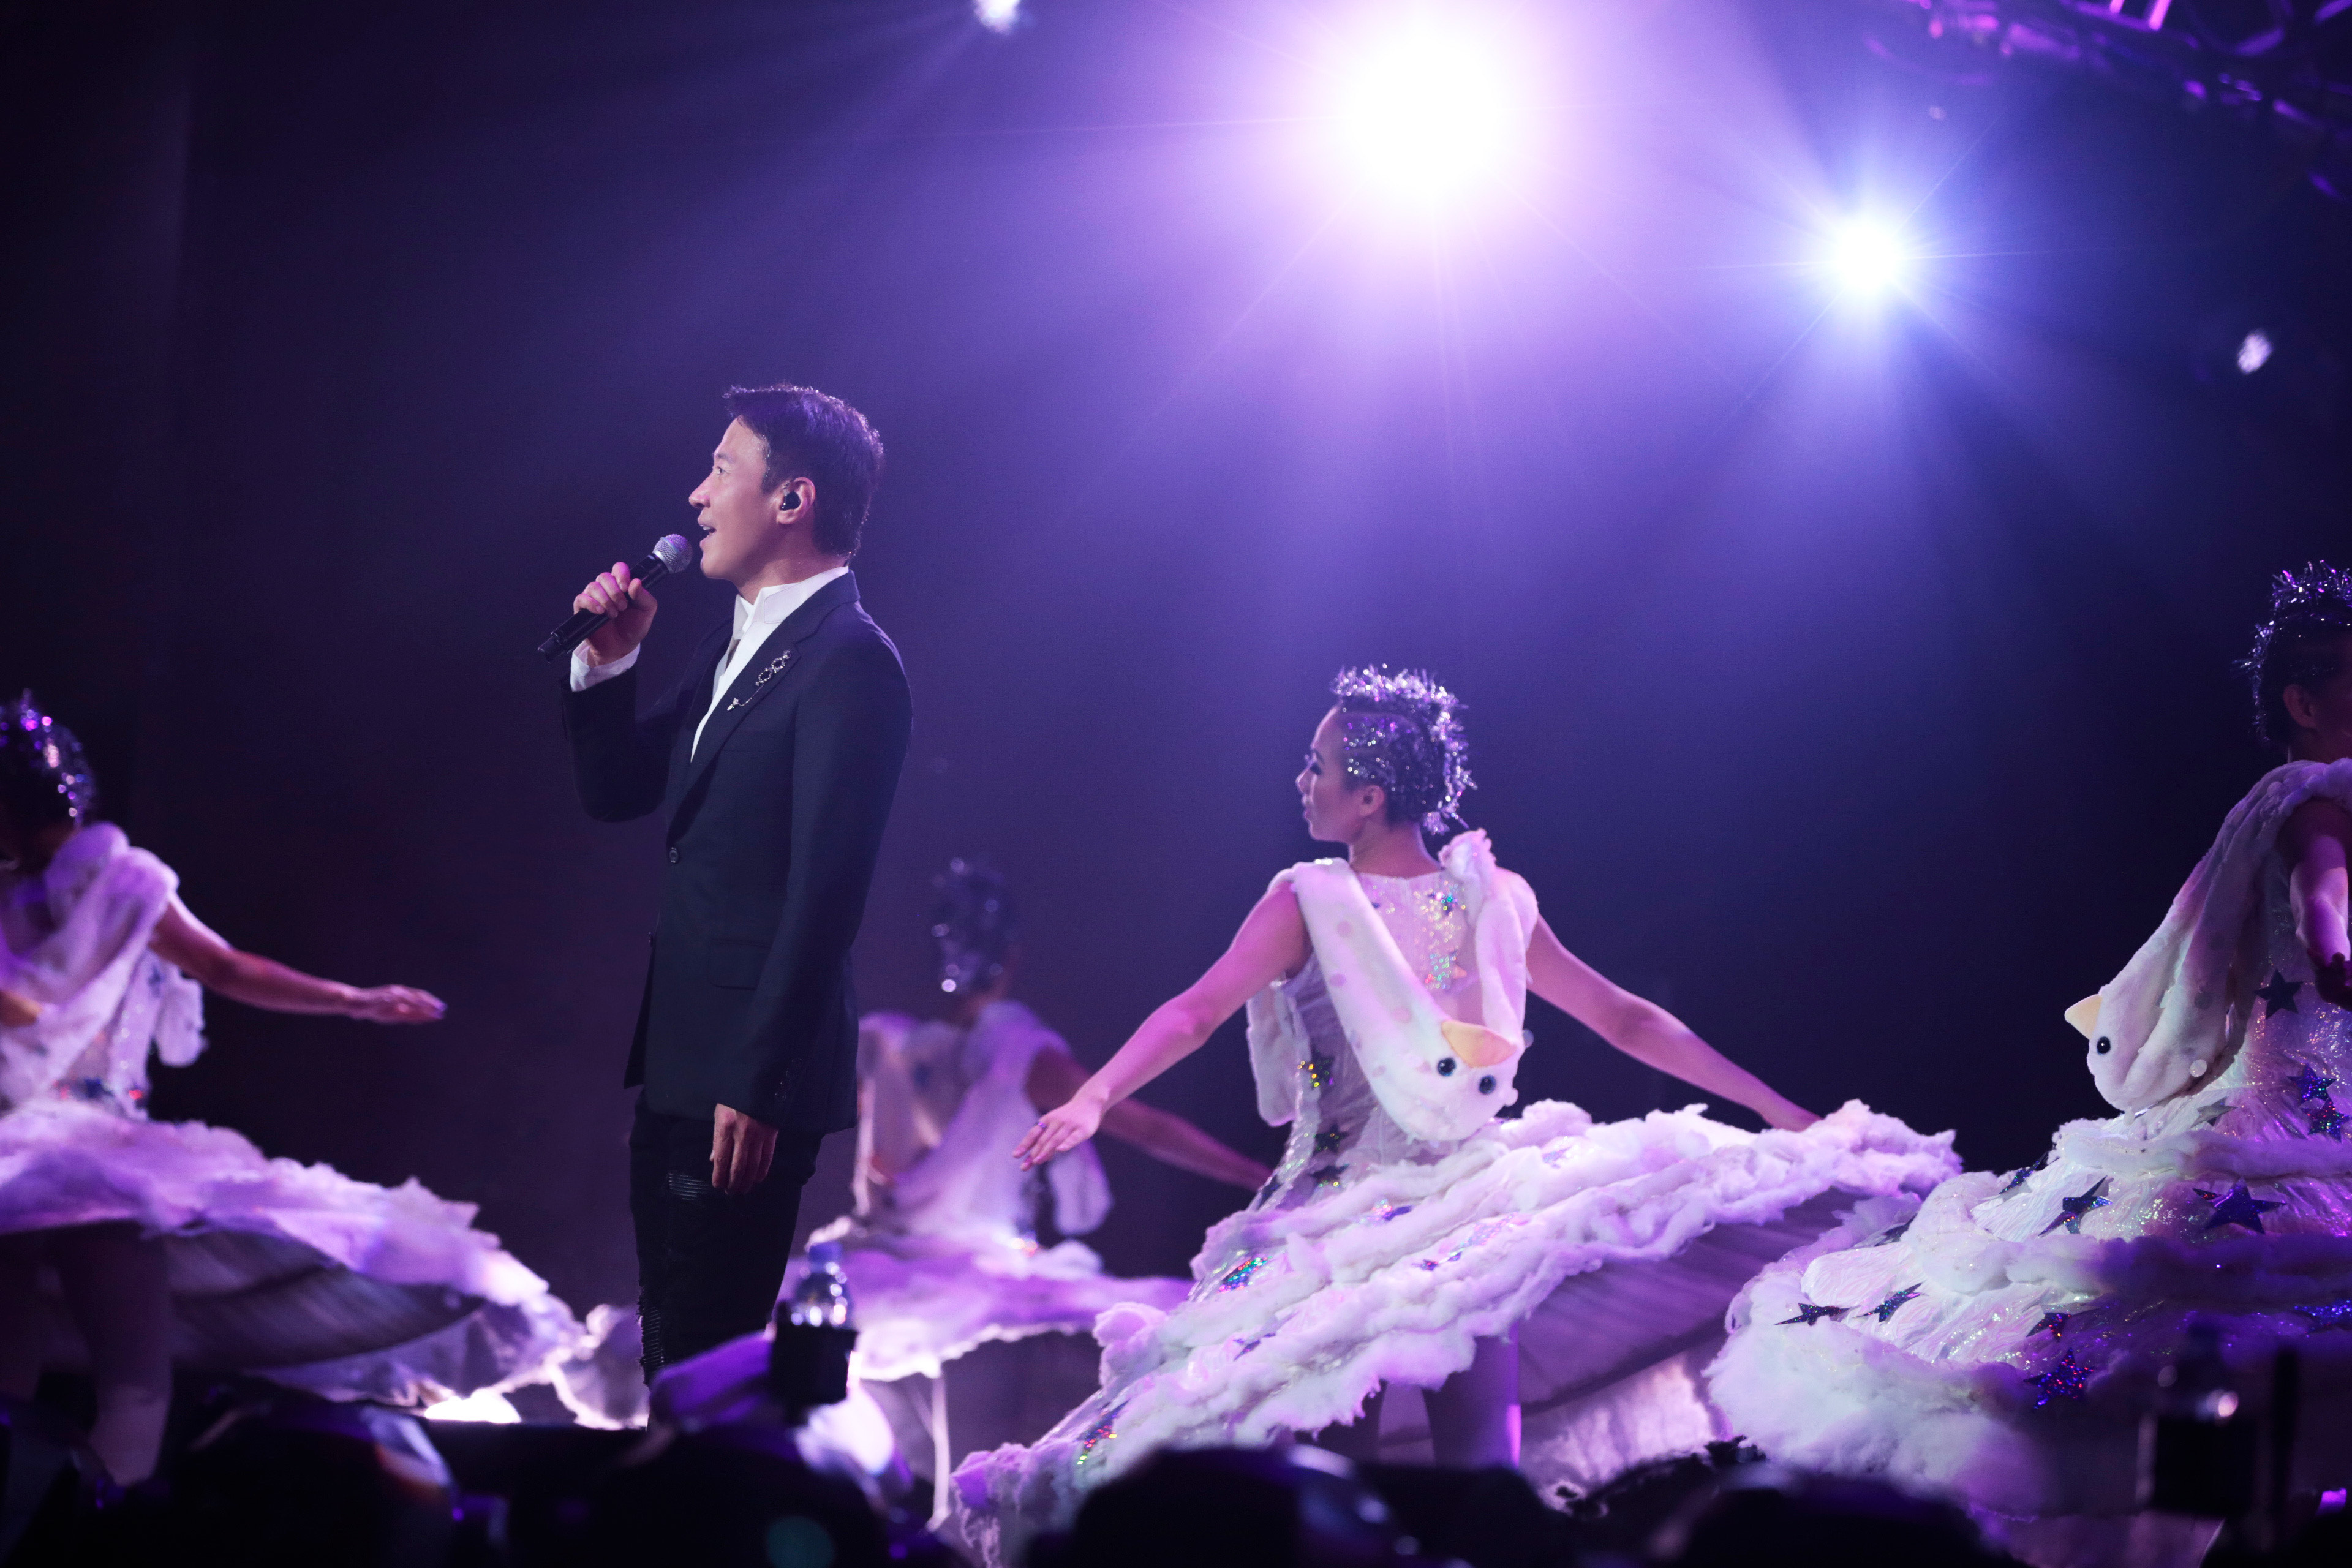 Melco announces Asias first ever residency show project with superstar headliners Aaron Kwok Joey Yung and Leon Lai